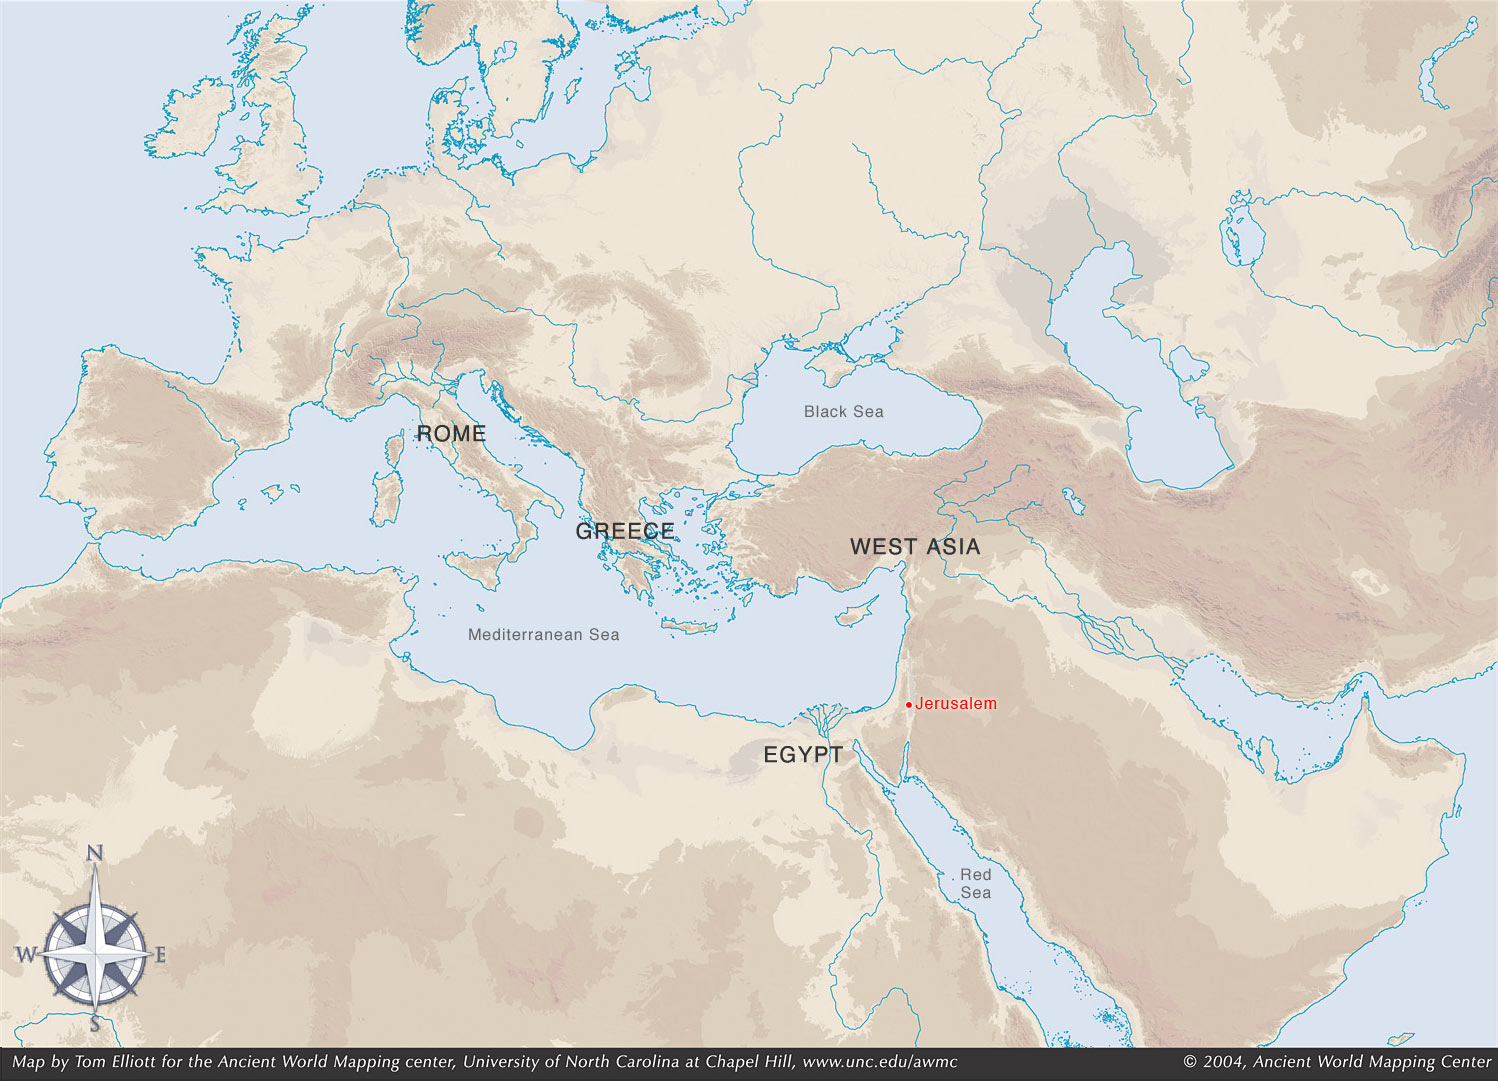 Reed college humanities 110 basic chronology of the ancient world map of jerusalem in maccabean period against the seleucids daniel composed in the early part of this period gumiabroncs Images